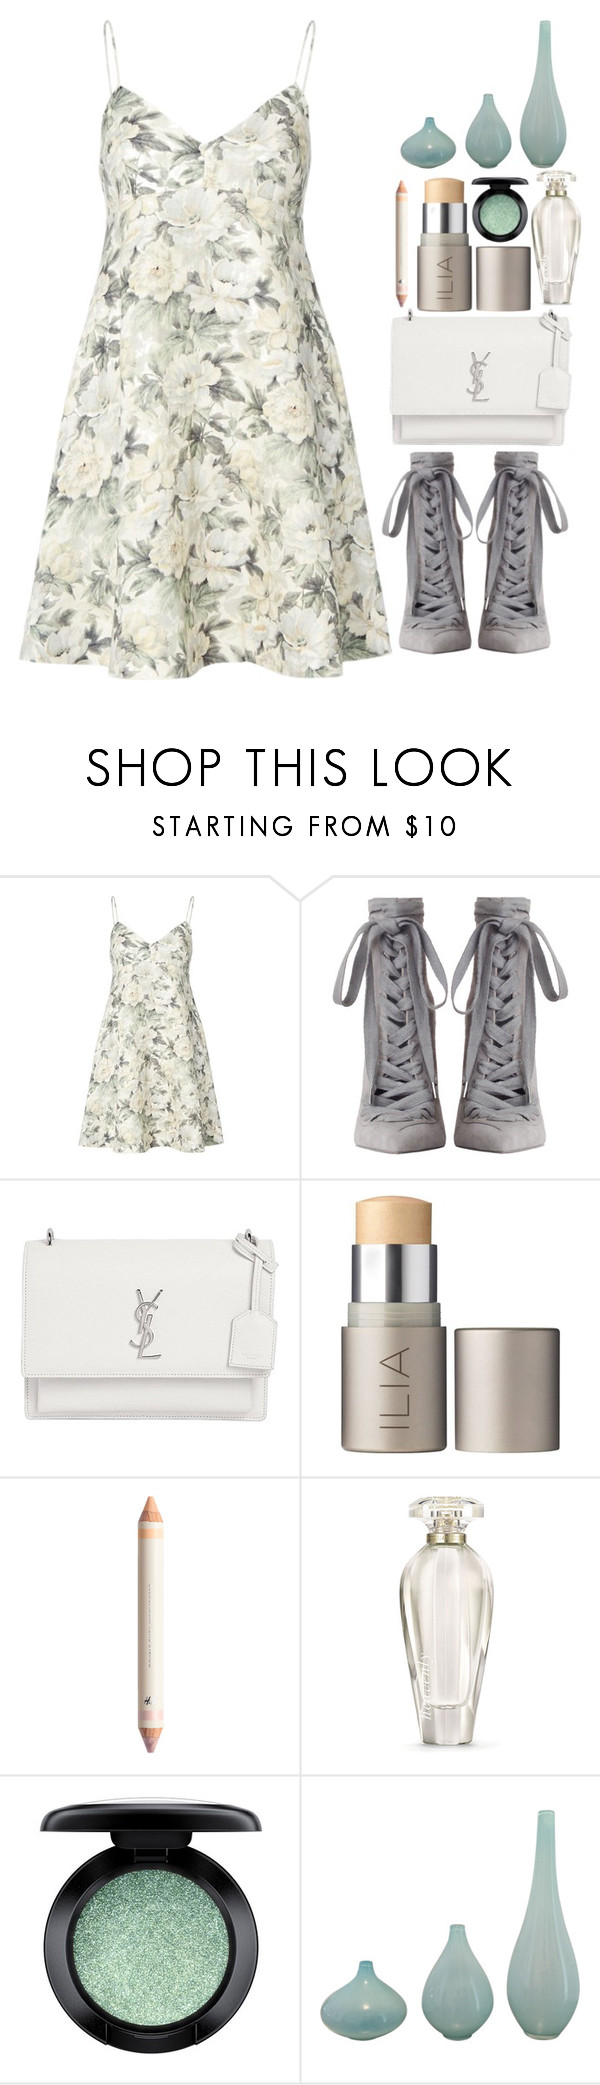 """""""Untitled #12"""" by saost ❤ liked on Polyvore featuring Zimmermann, Yves Saint Laurent, Ilia, Victoria's Secret and MAC Cosmetics"""